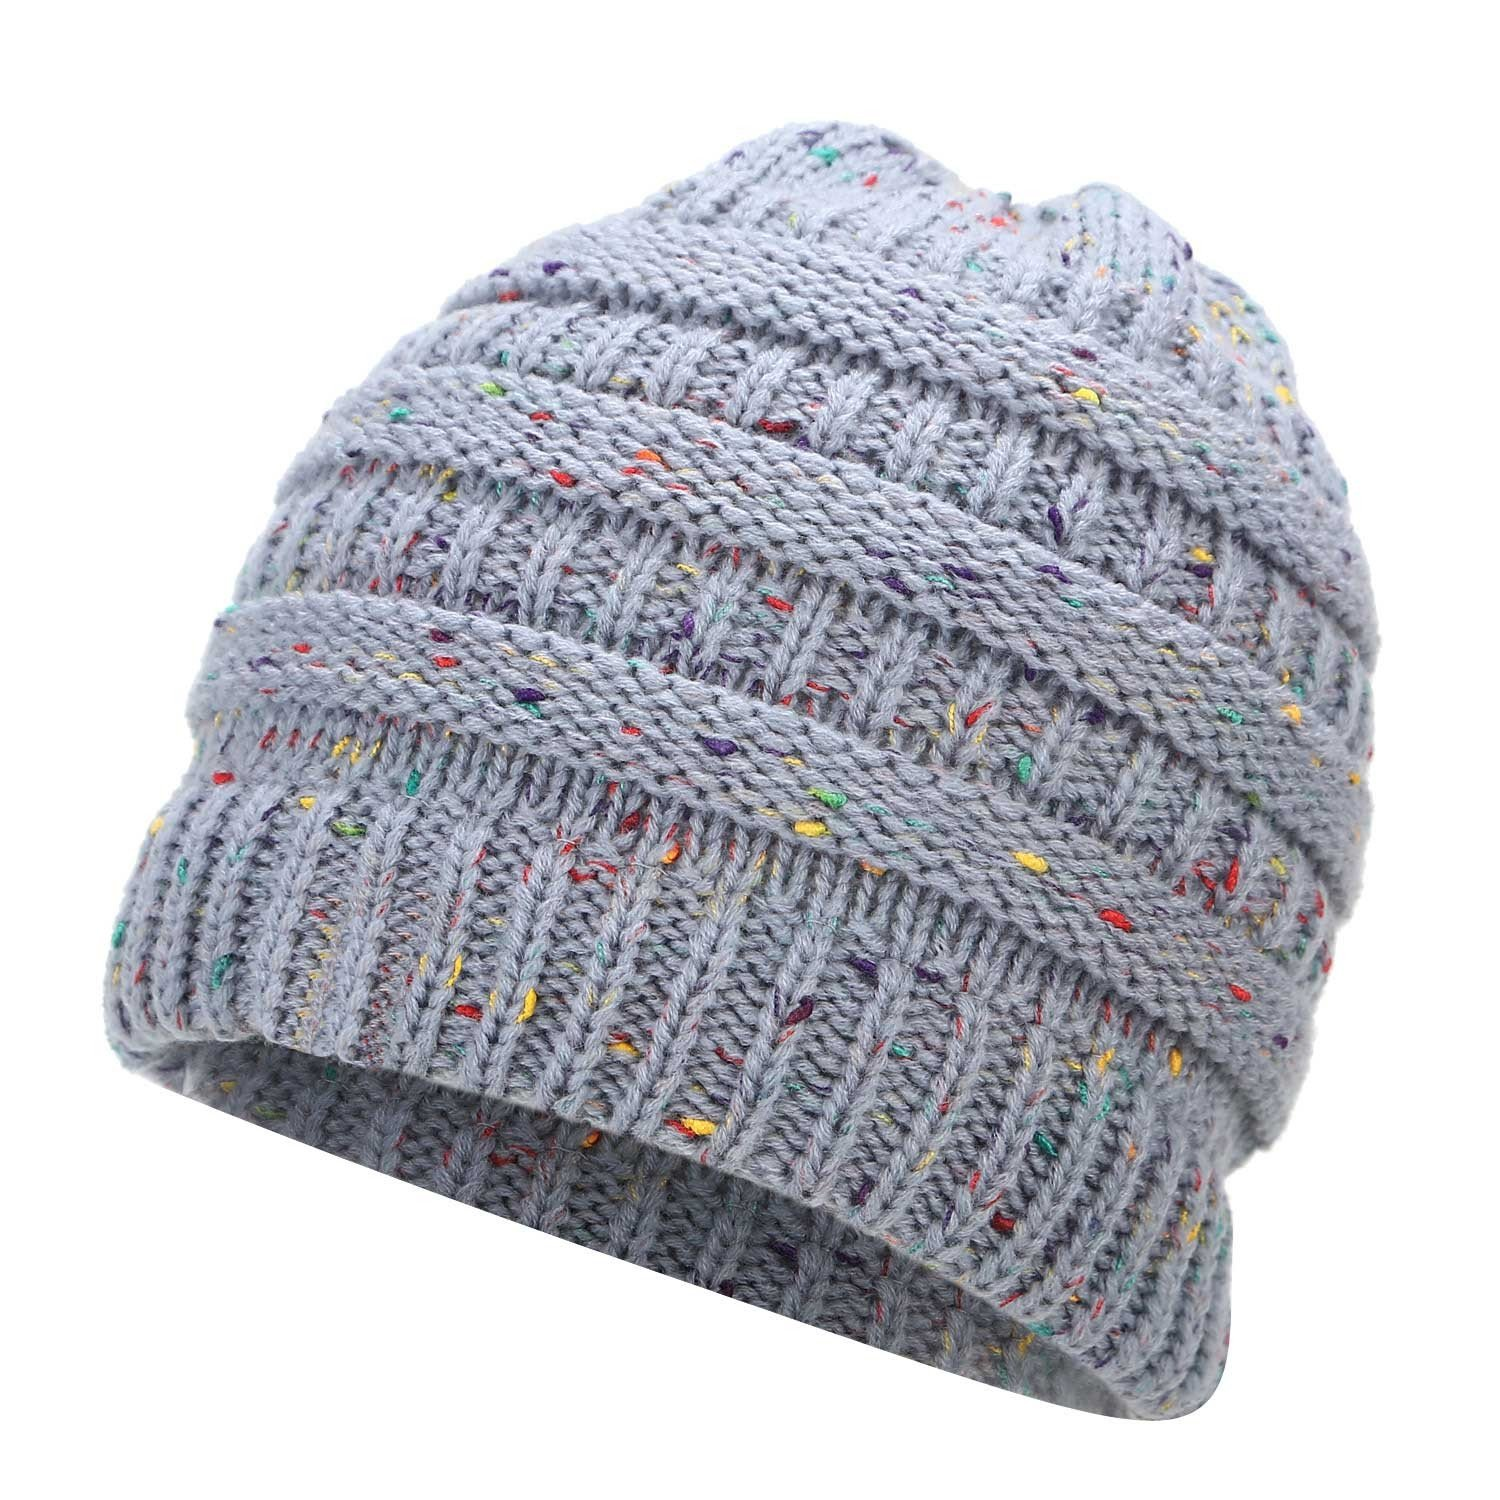 2a558fd3539d02 Ponytail Beanie Hat Winter Skullies Beanies Warm Caps Female Knitted  Stylish Hats For Ladies Fashion